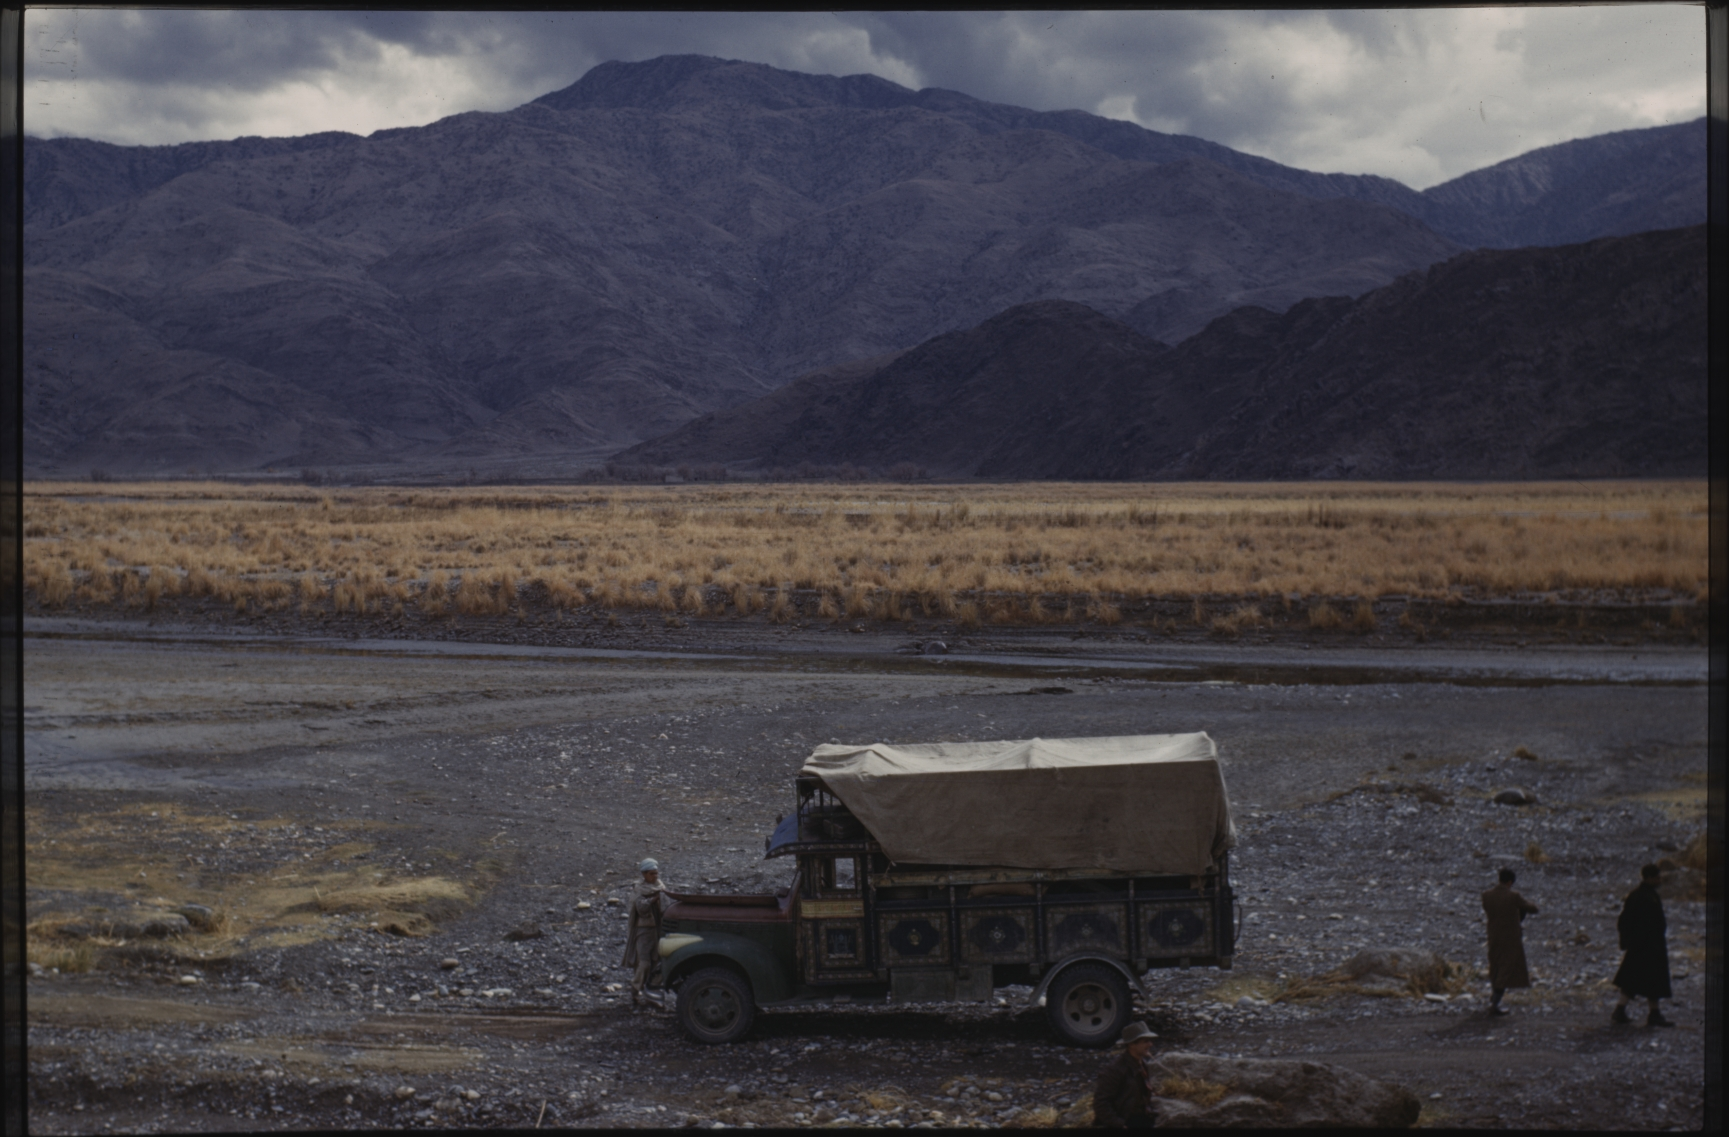 In spite of poor infrastructure, trucks manage to reach faraway corners of the country. That means the end of the nomads' trade monopoly. Photo: Jean Bourgeois, 1968